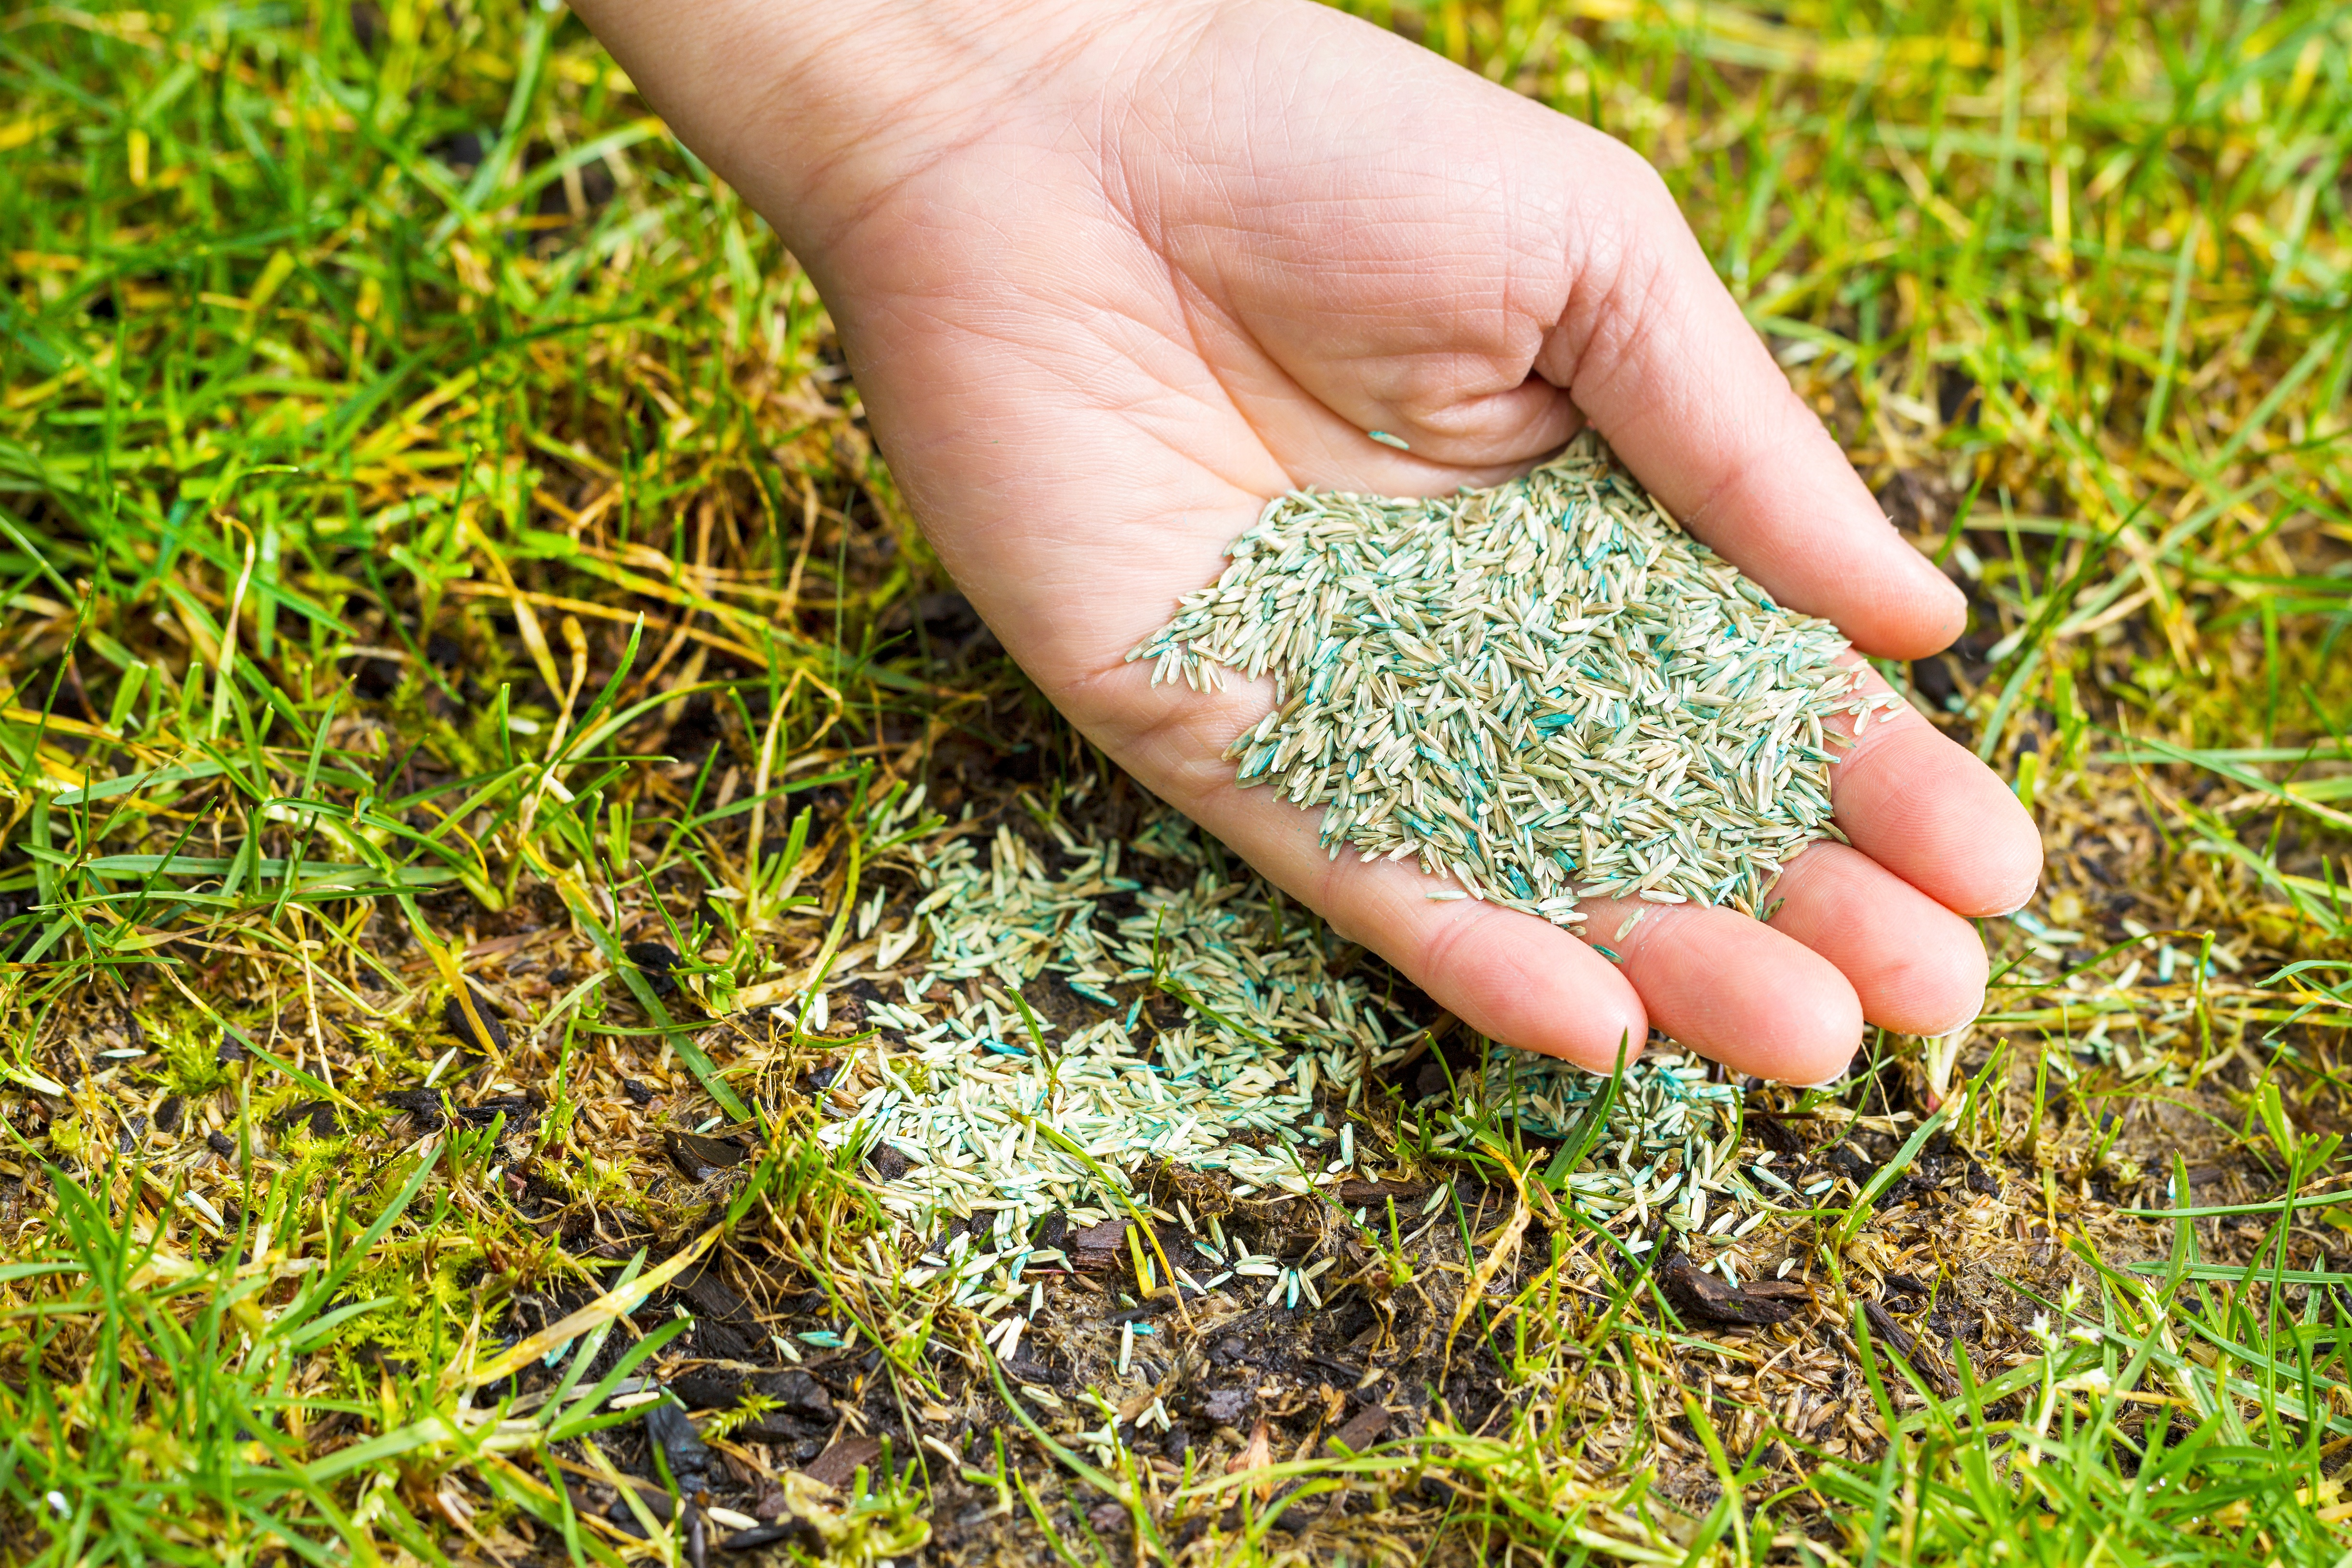 Overseeding is the practice of adding new grass seed into a lawn.